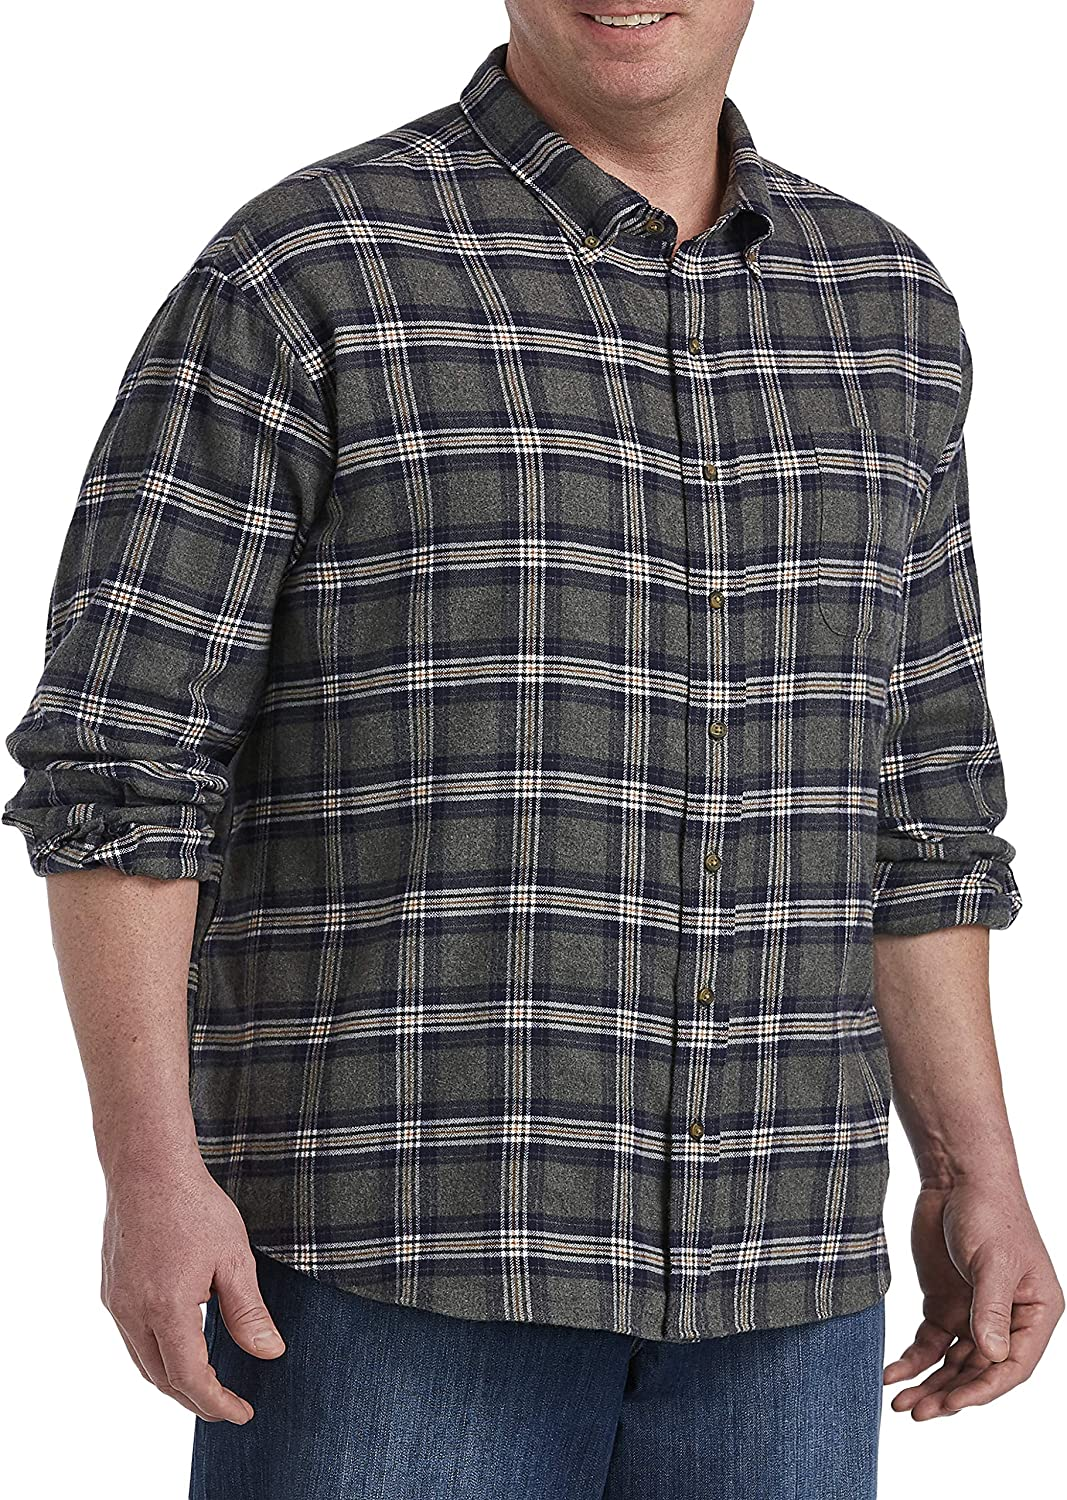 Harbor Bay by DXL Big and Tall Plaid Flannel Shirt, Grey Heather